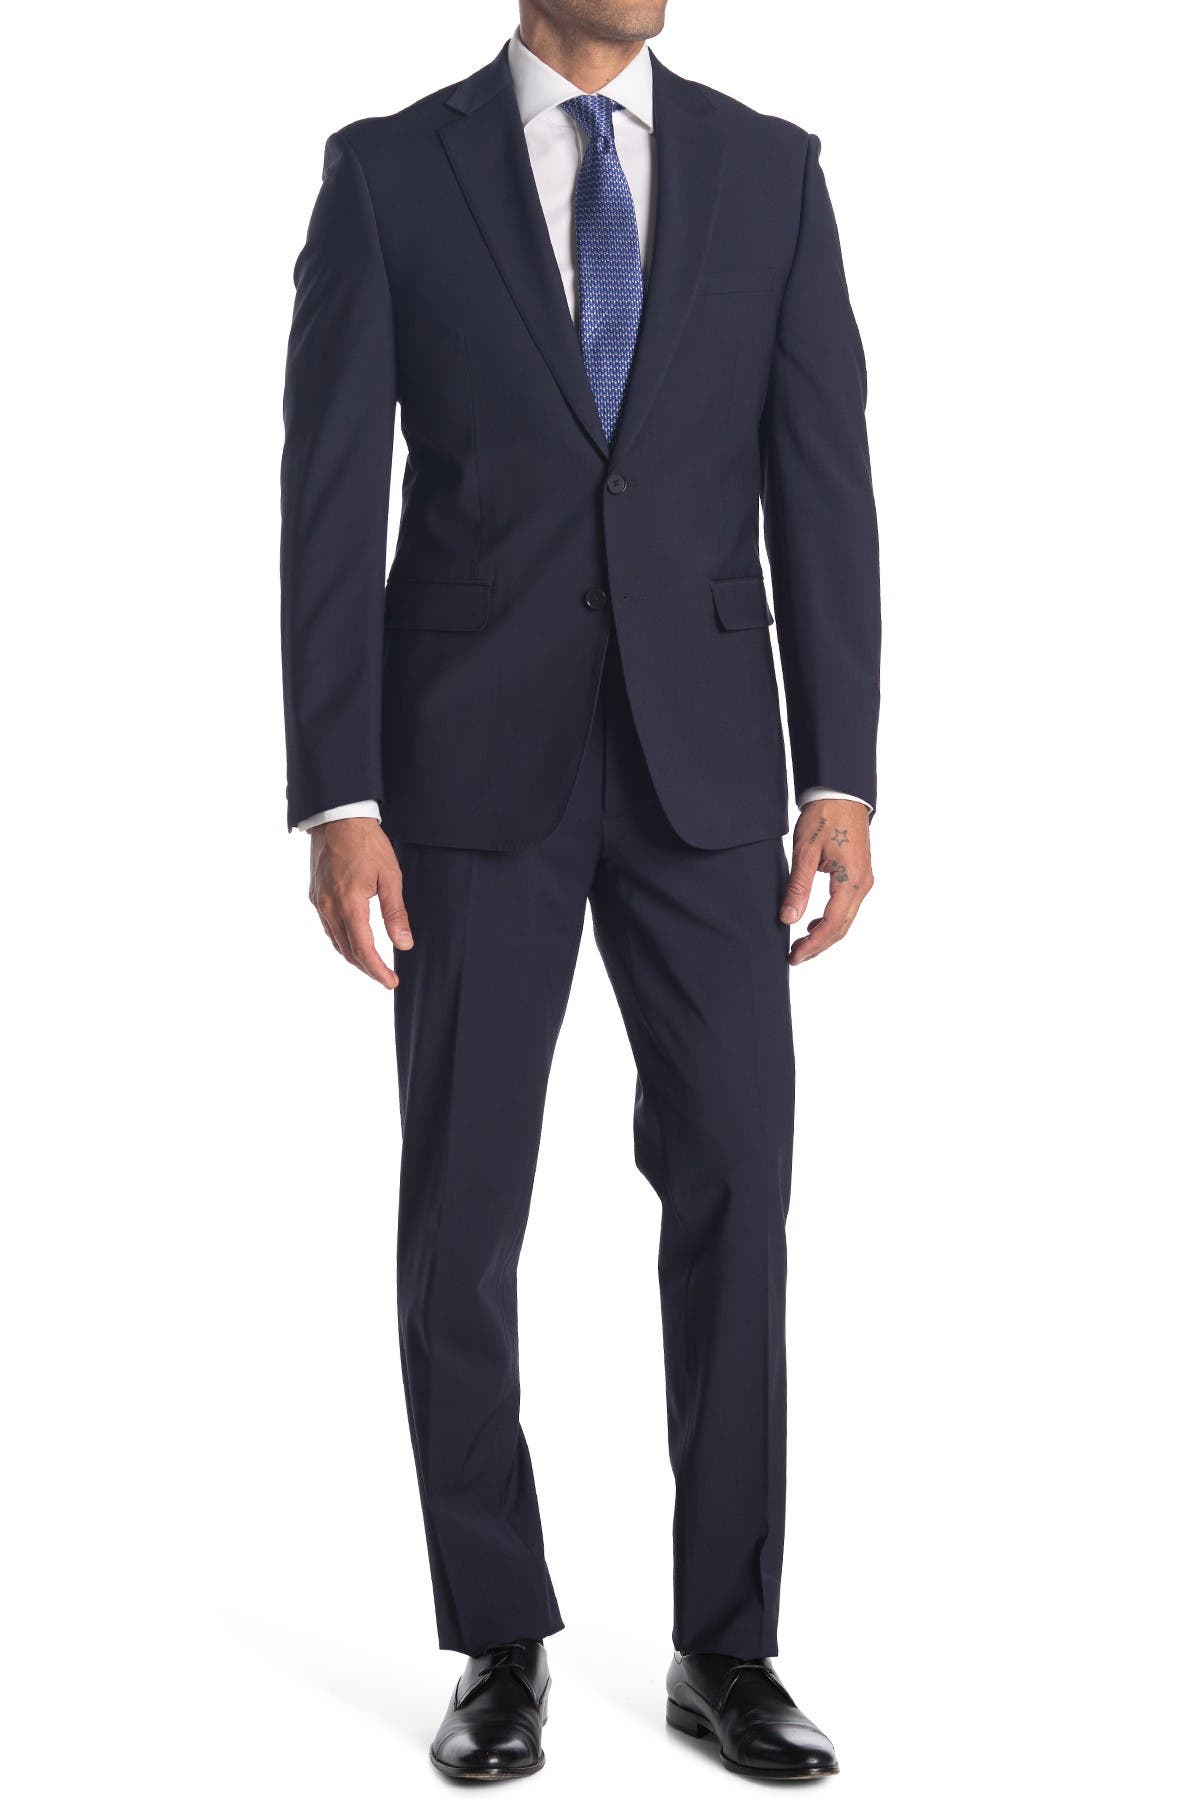 Image of Calvin Klein Navy Solid Two Button Notch Lapel Suit